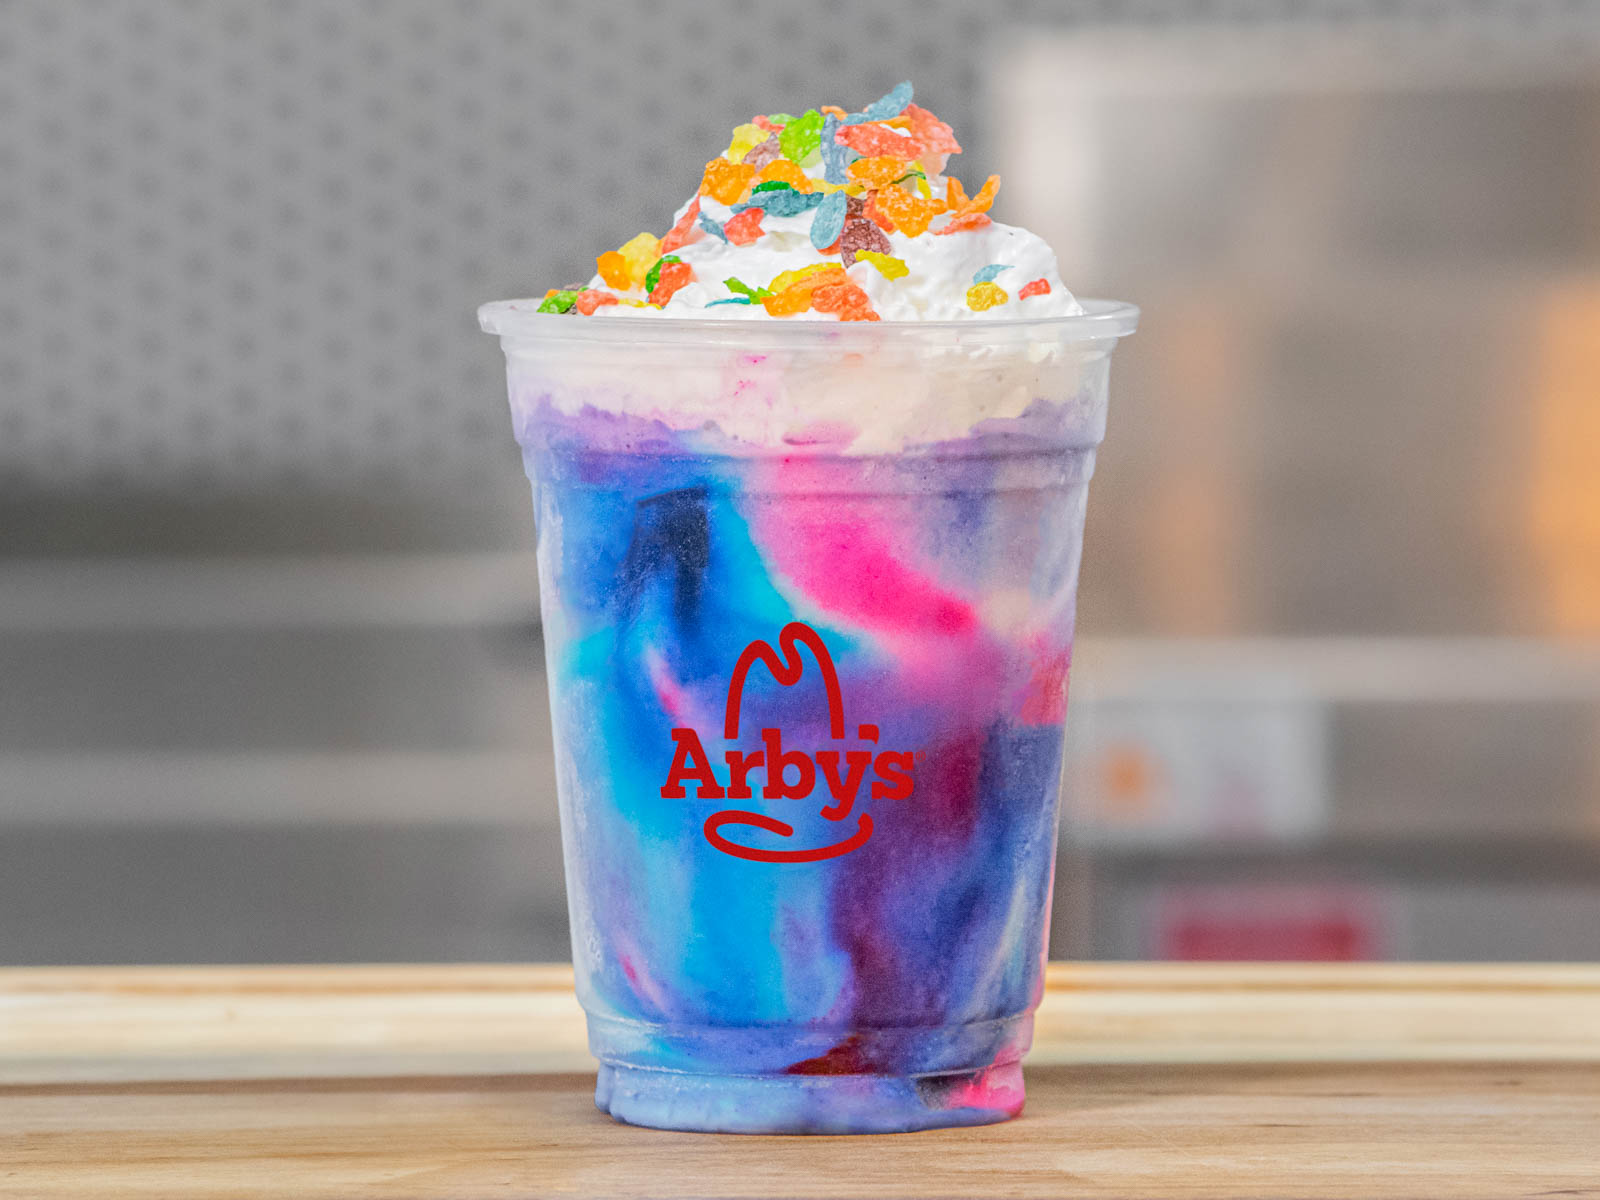 Arby's Area 51 Basecamp Experience Menu